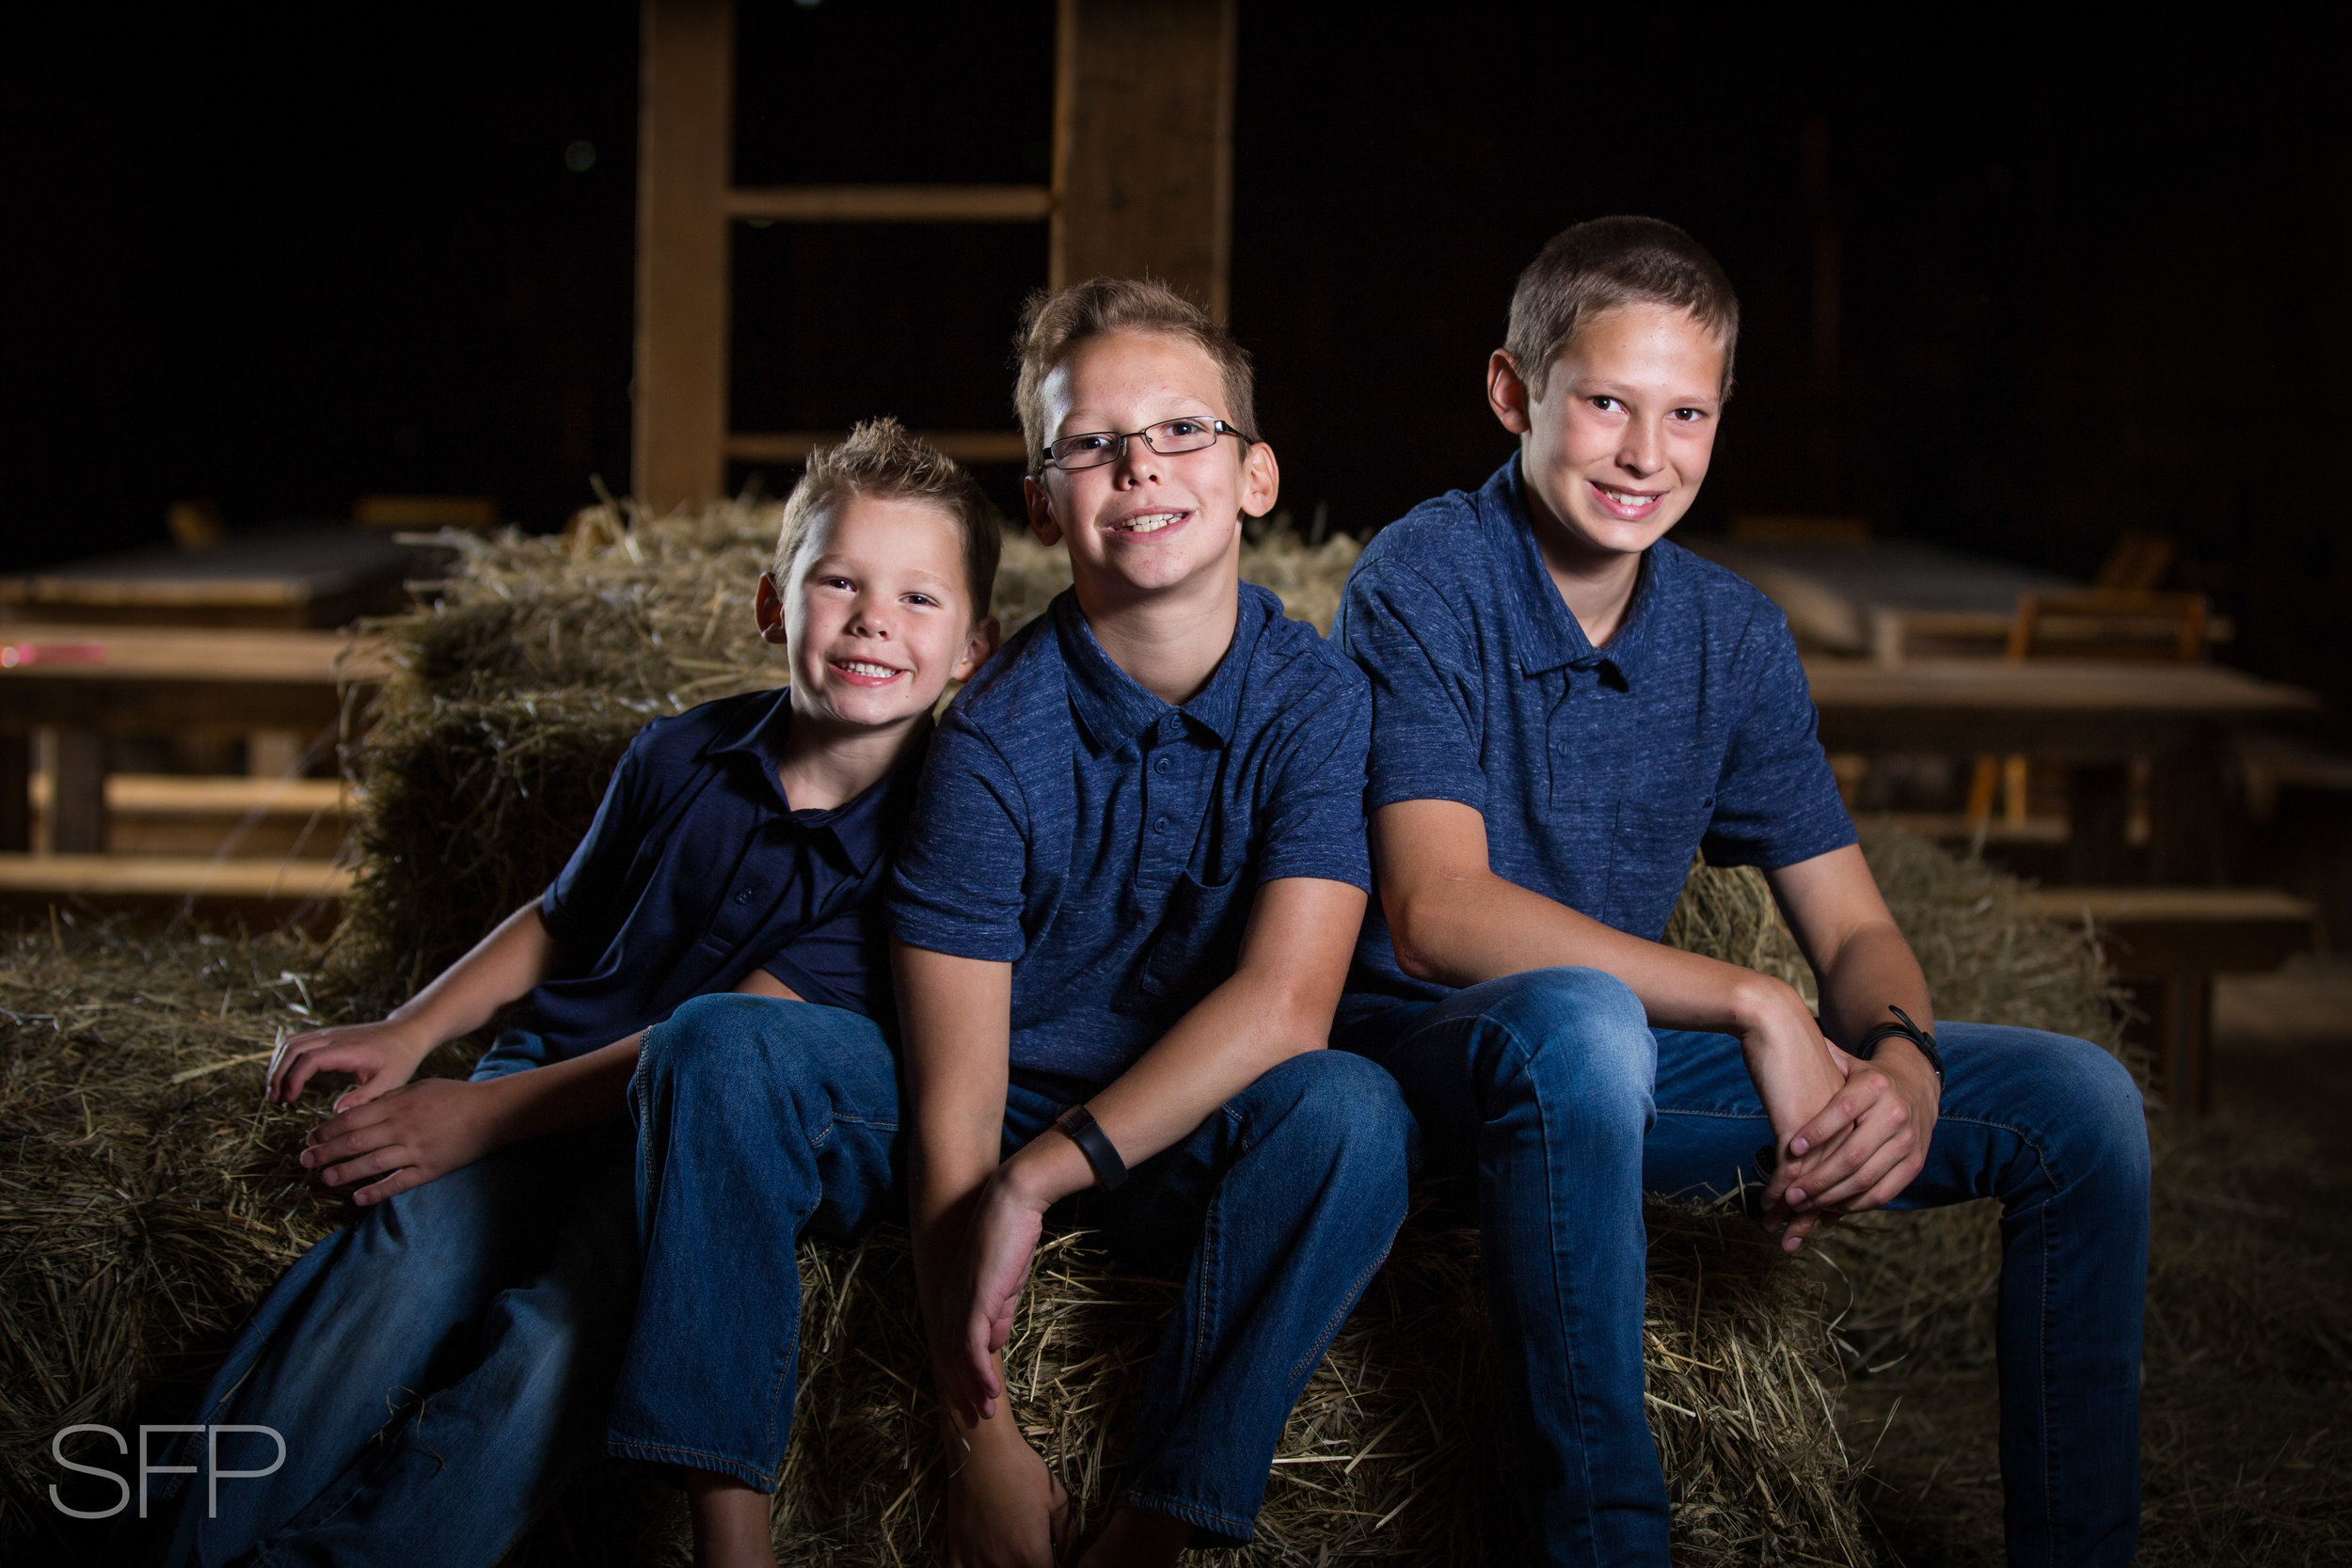 brothers sitting on hay in a barn